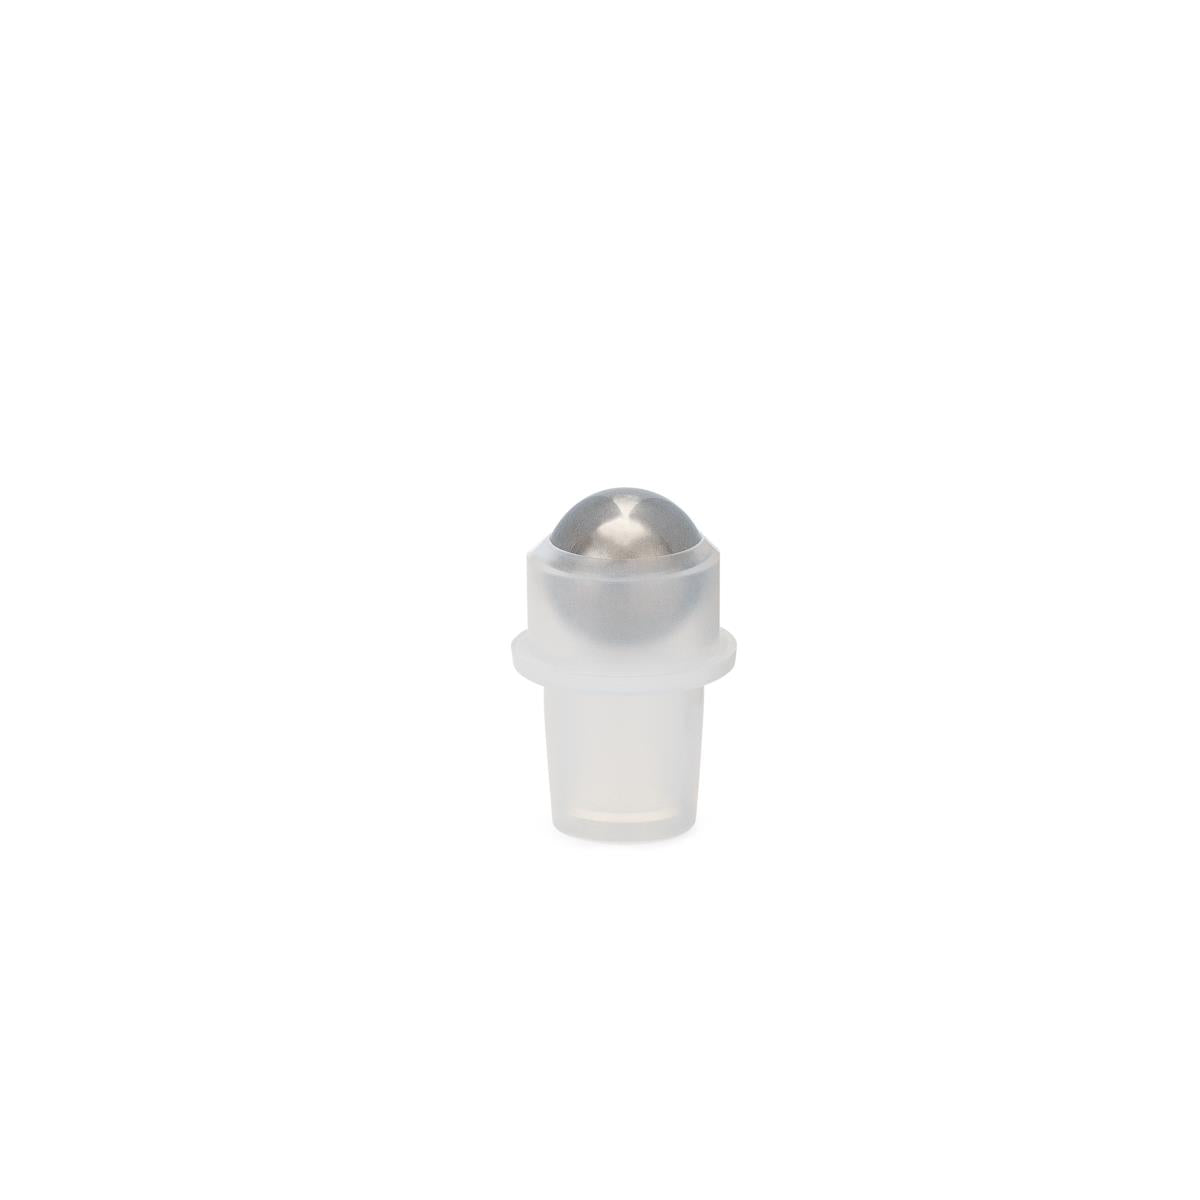 15.9mm Assembled PE Fitment and SS Ball (for 10ml vial #4-08022)